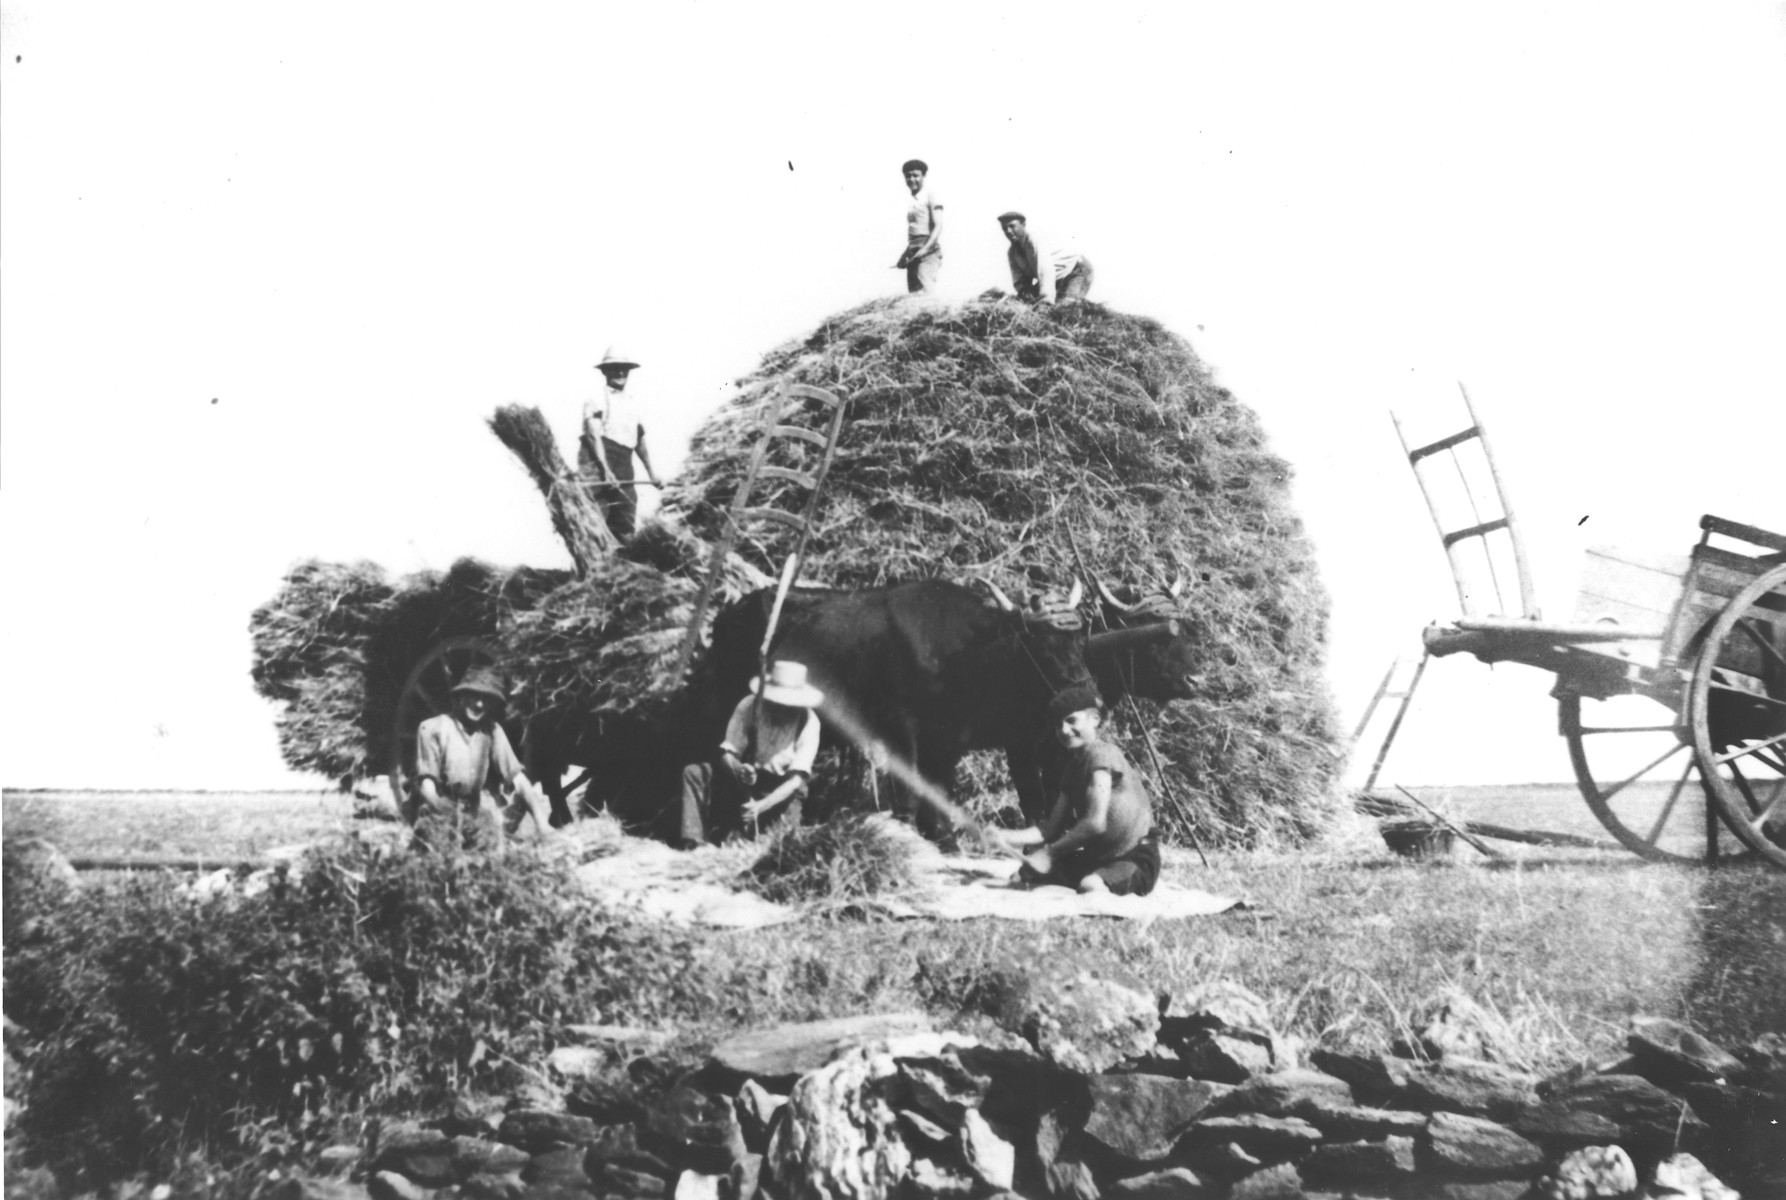 Young agricultural workers pitch hay onto a large haystack on a farm in Treves.    Among those pictured is Julien Bluschtein, a Jewish youth in hiding.